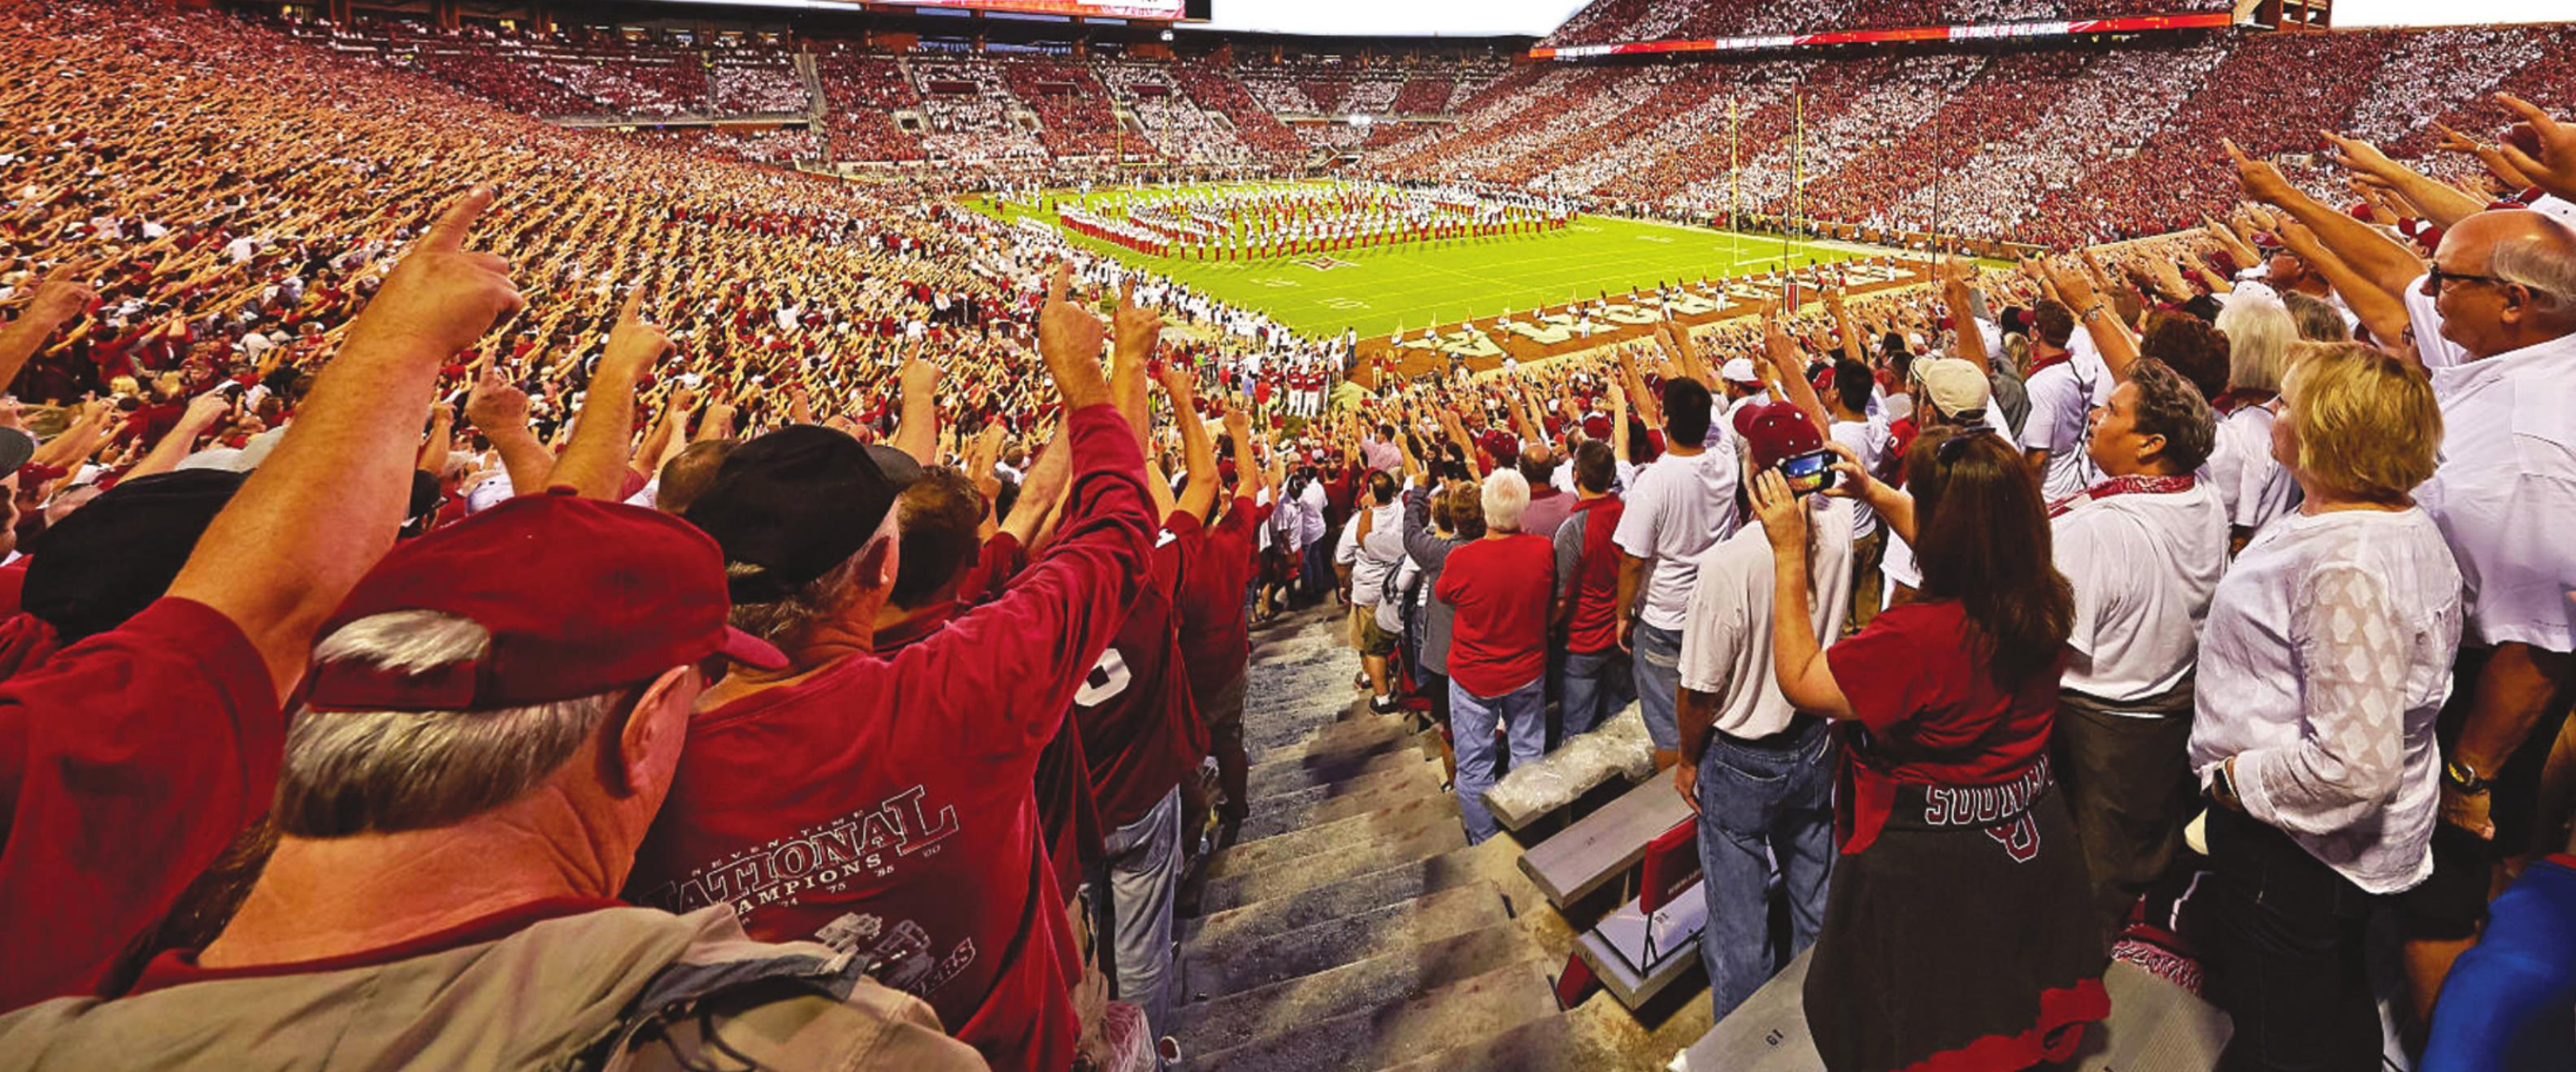 OU is one of a few schools which has announced plans to reopen facilities for college football. Provided